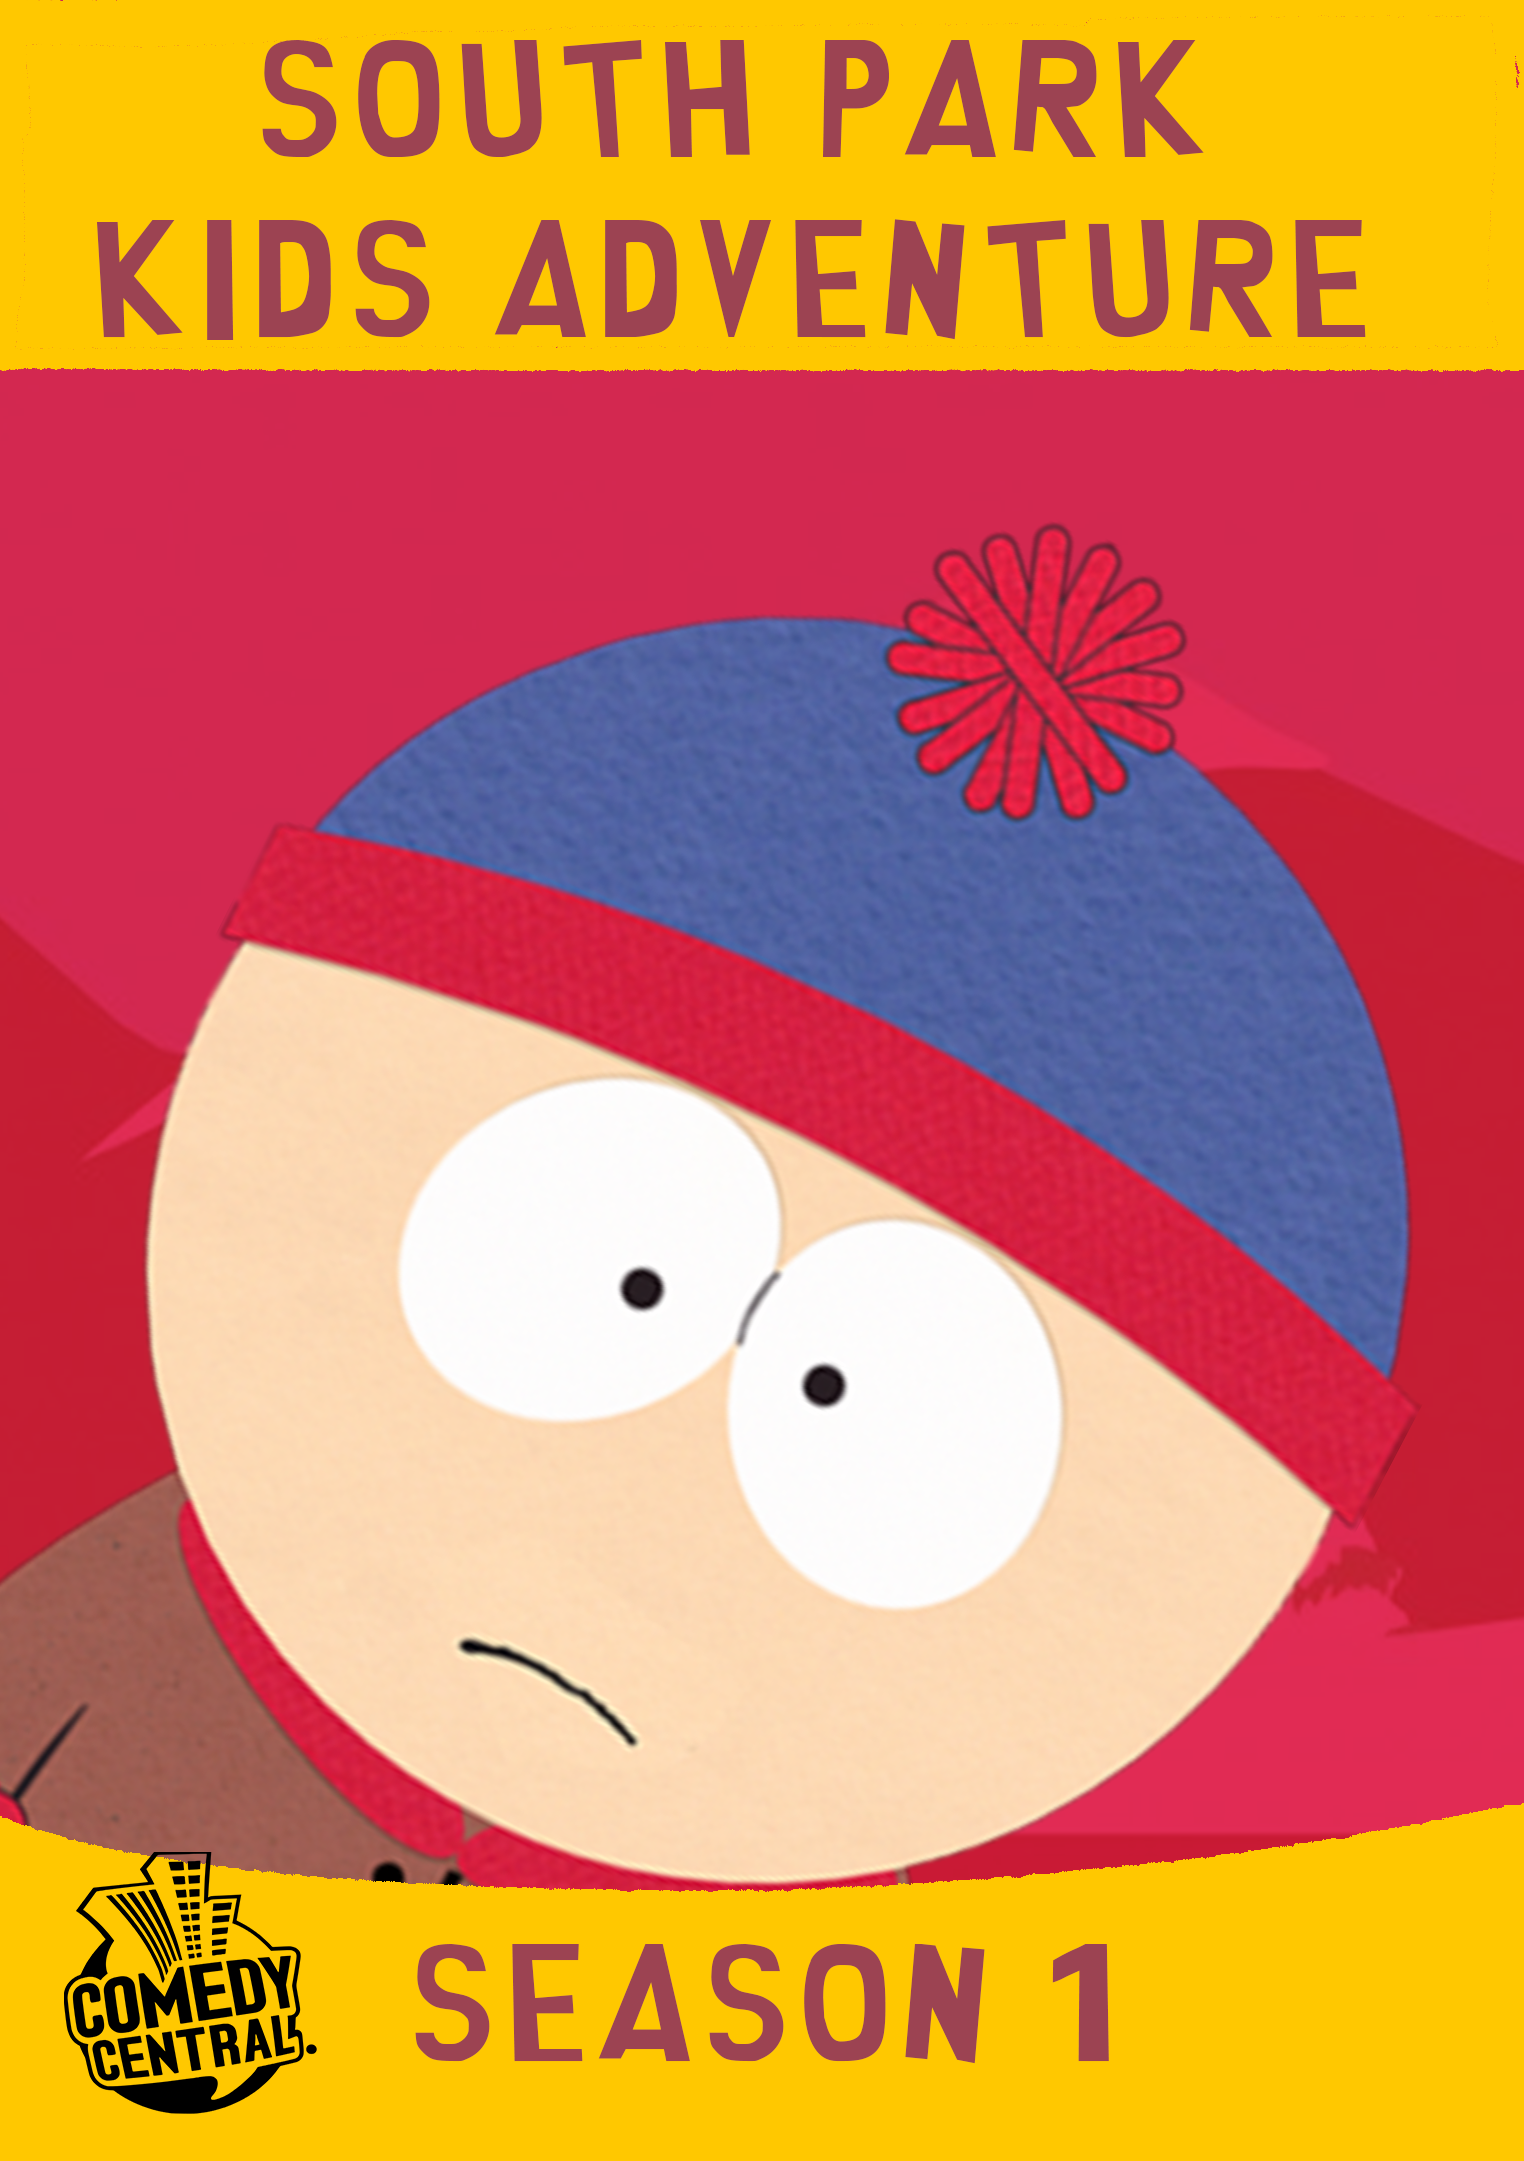 South Park Kids Adventure